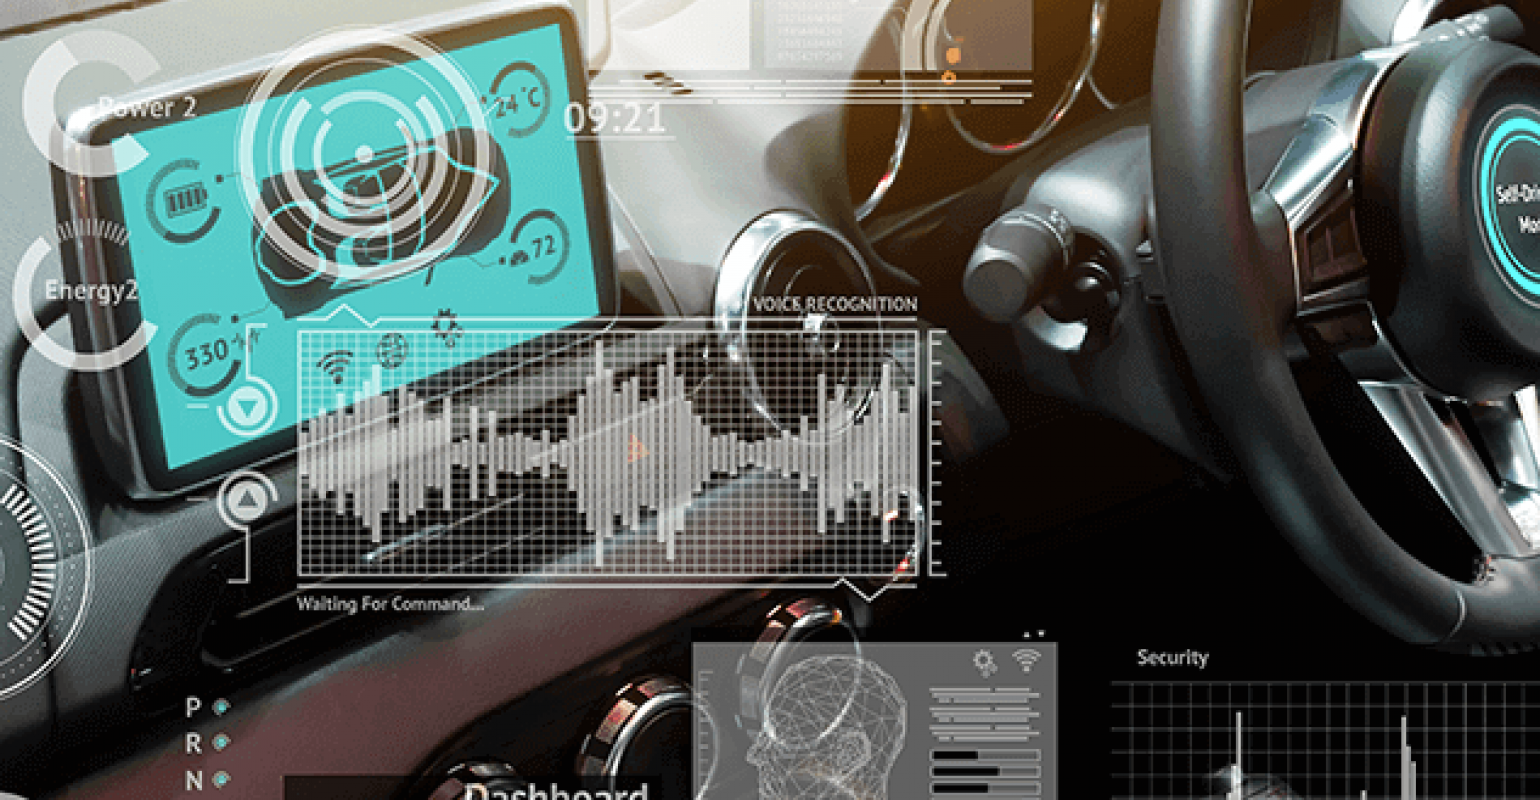 Connected Vehicles' Use of Protected Data Brings Privacy Concerns